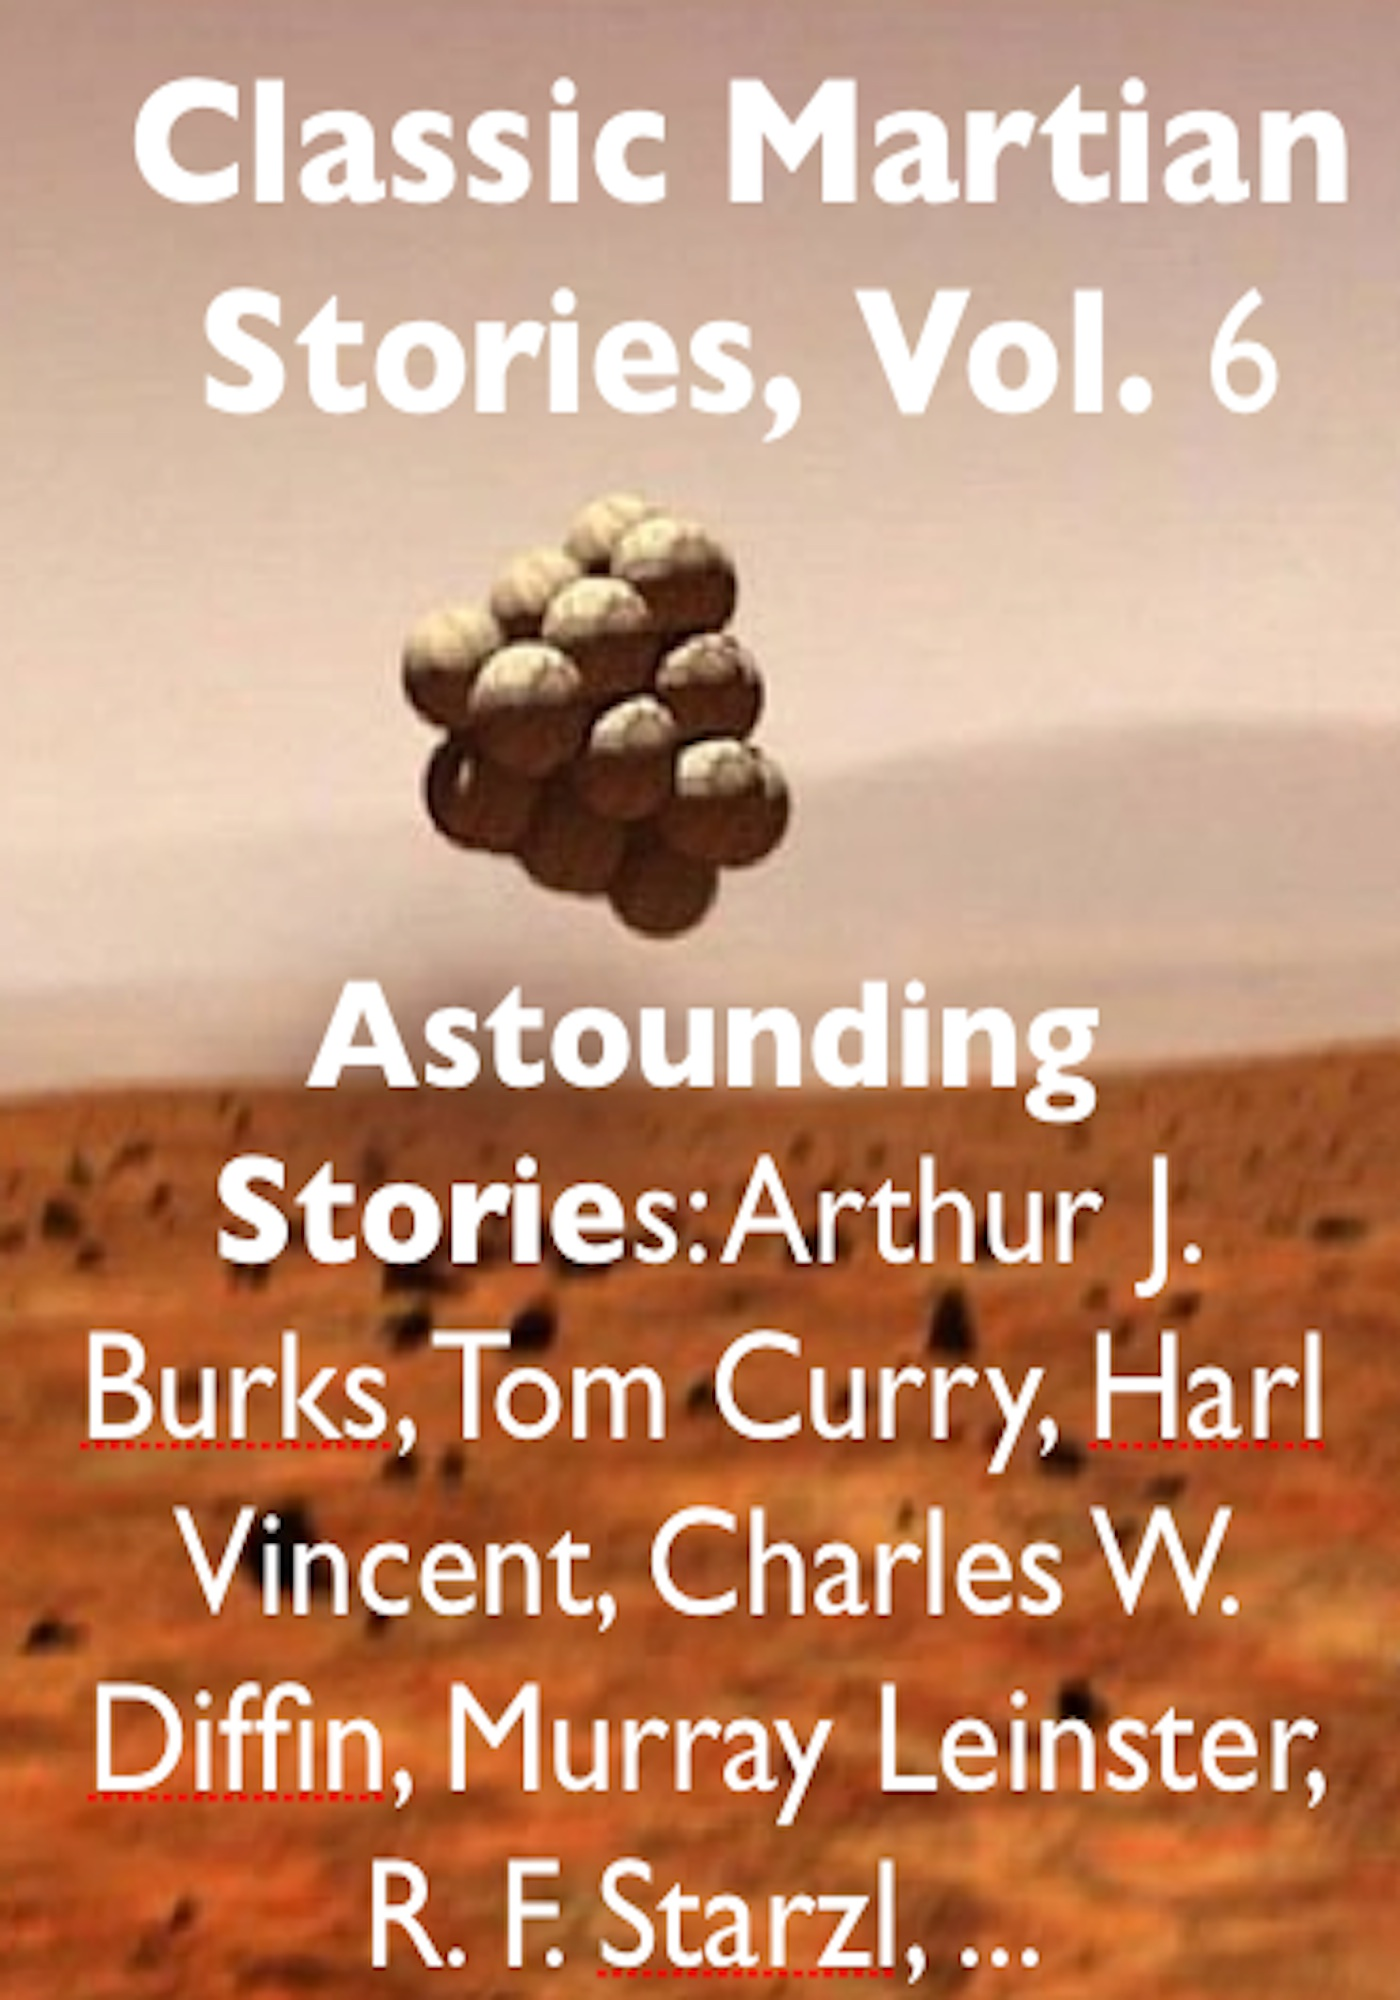 Classic Martian Stories, Vol. 6